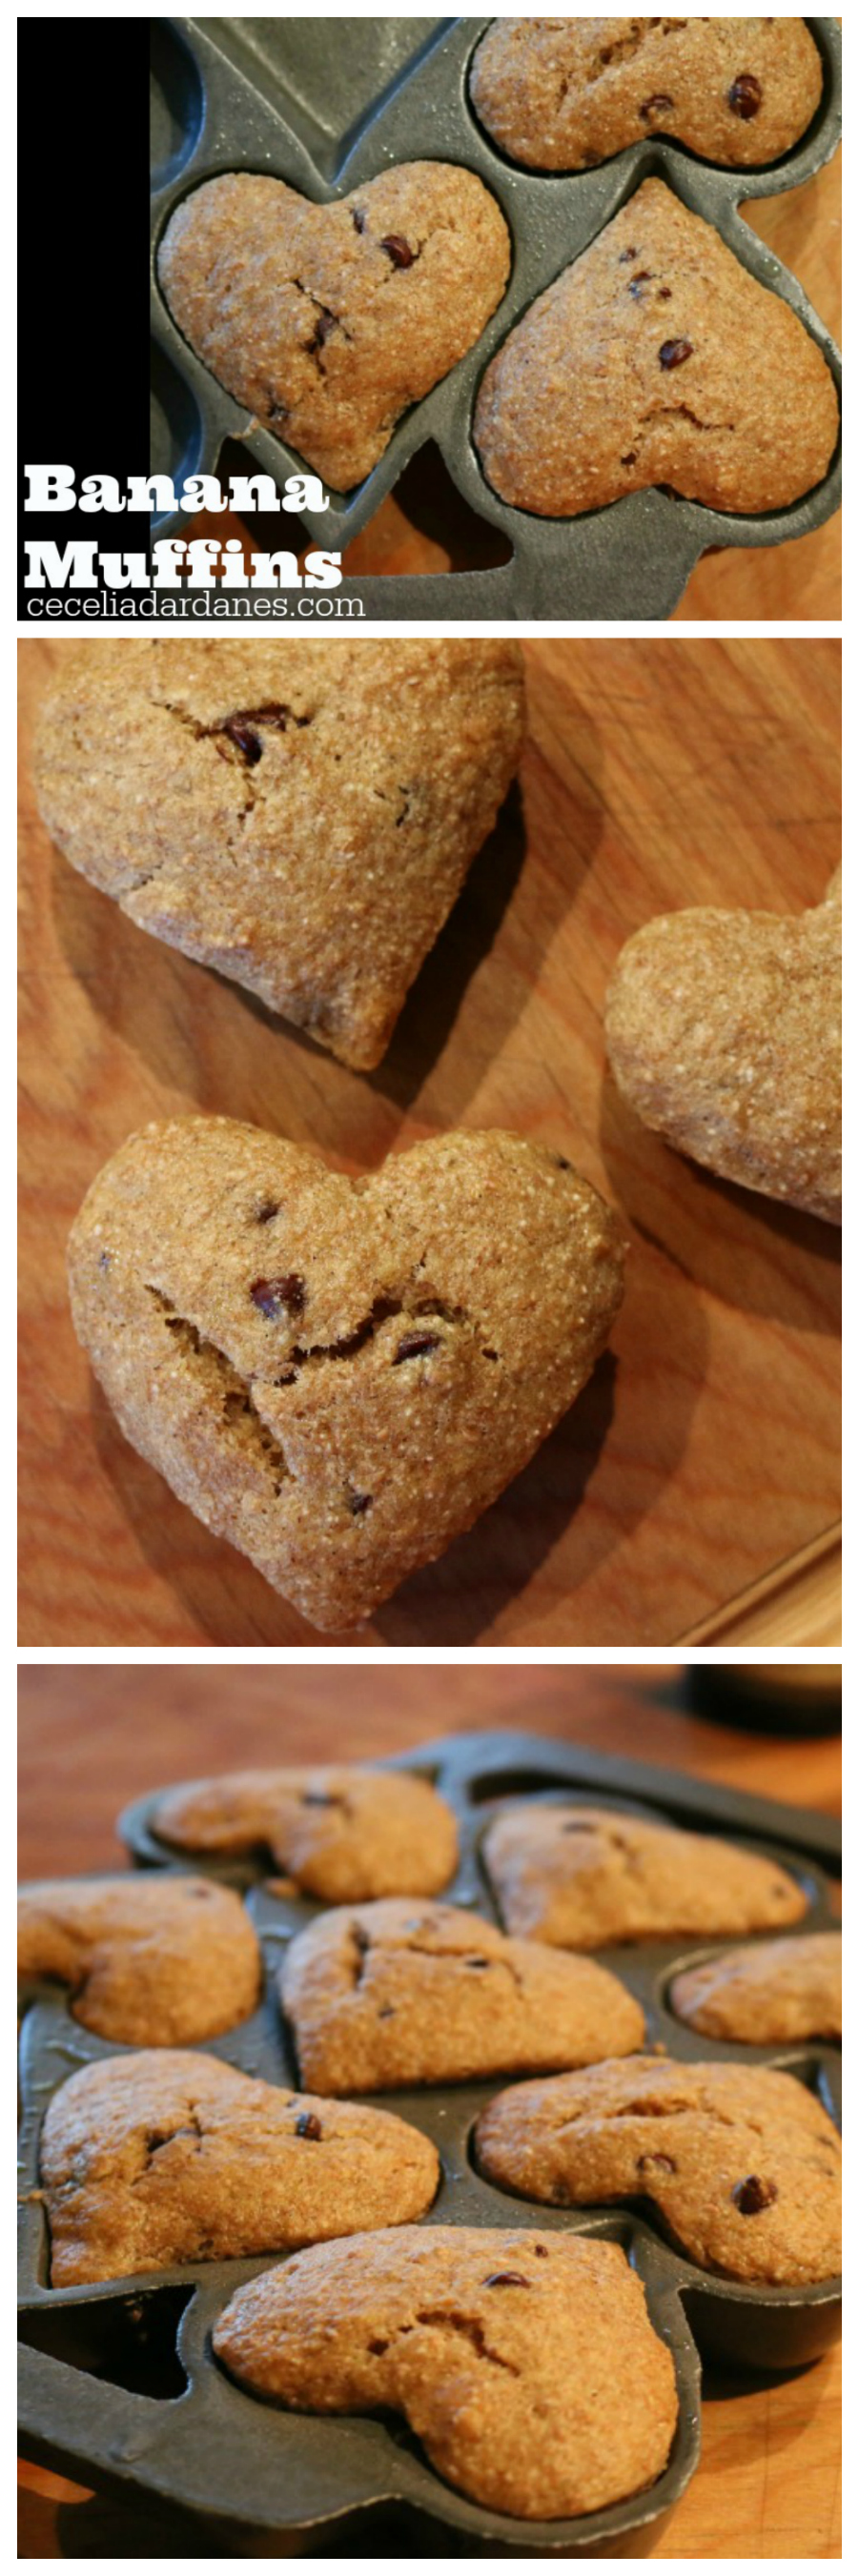 Heart Shaped Banana Muffins with Chocolate Chips CeceliasGoodStuff.com Good Food for Good People